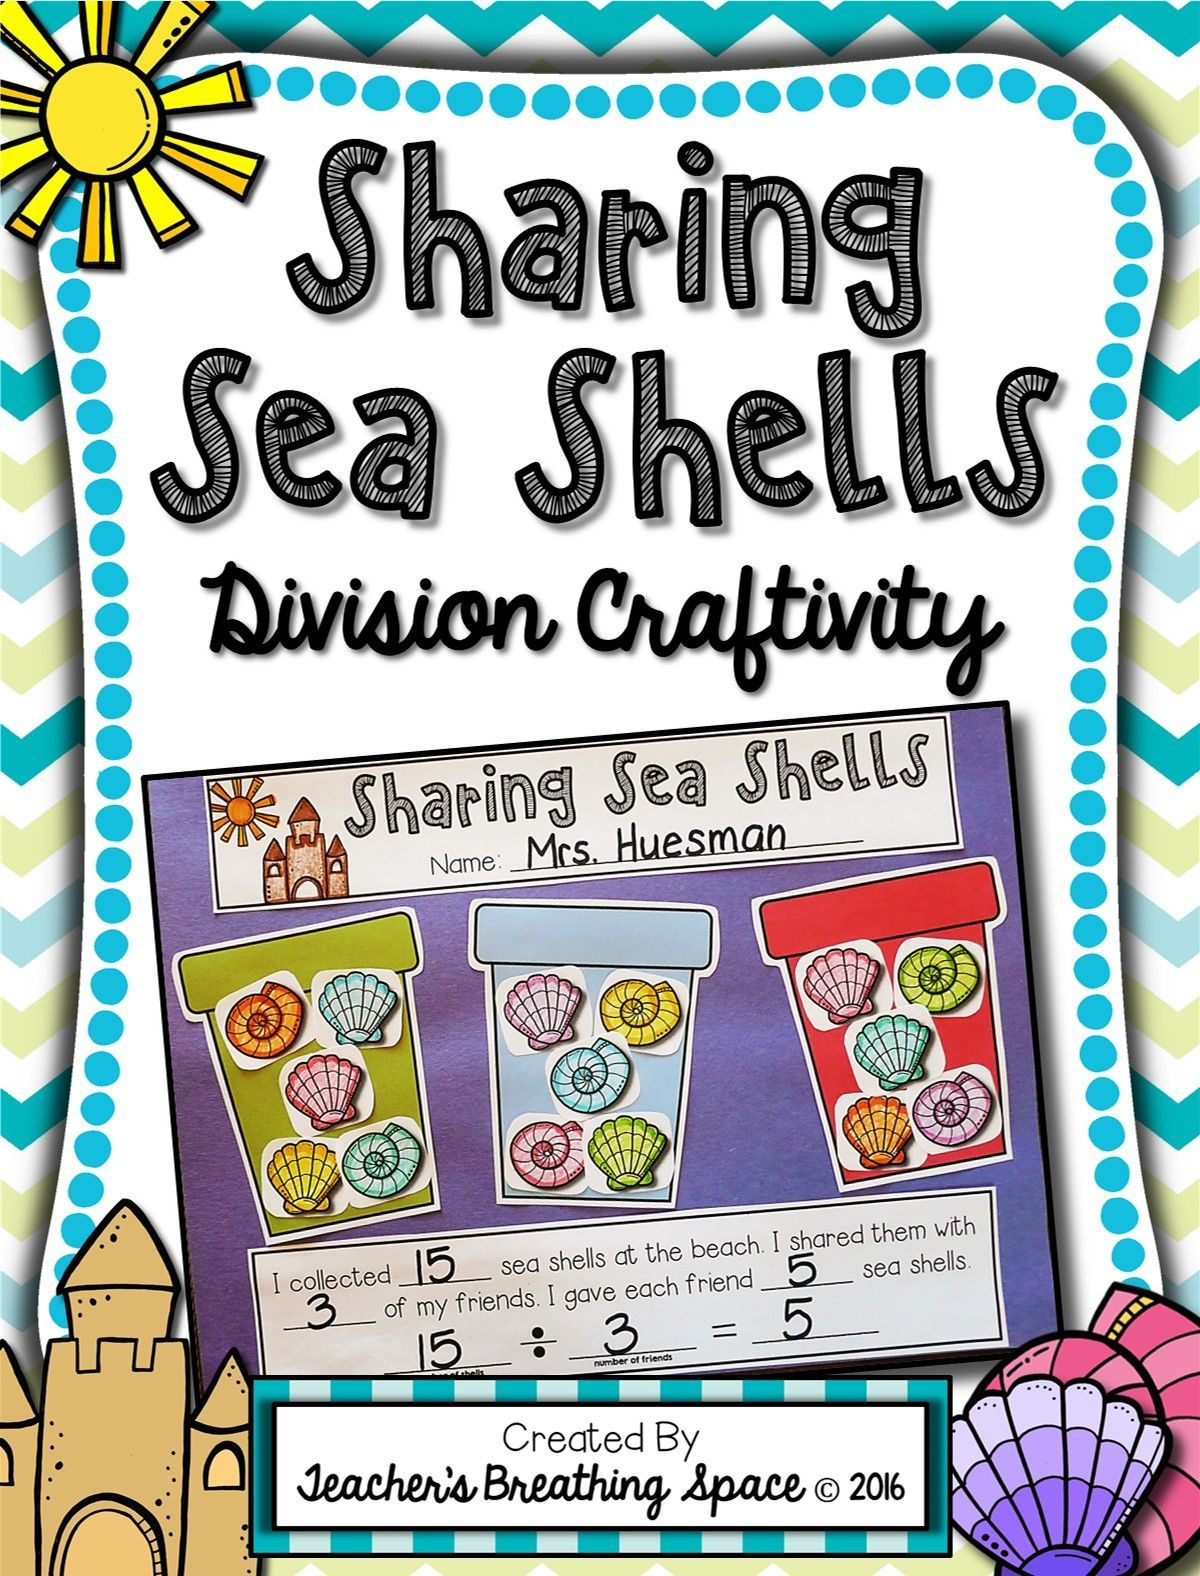 Beginning Division Craftivity Sharing Sea Shells